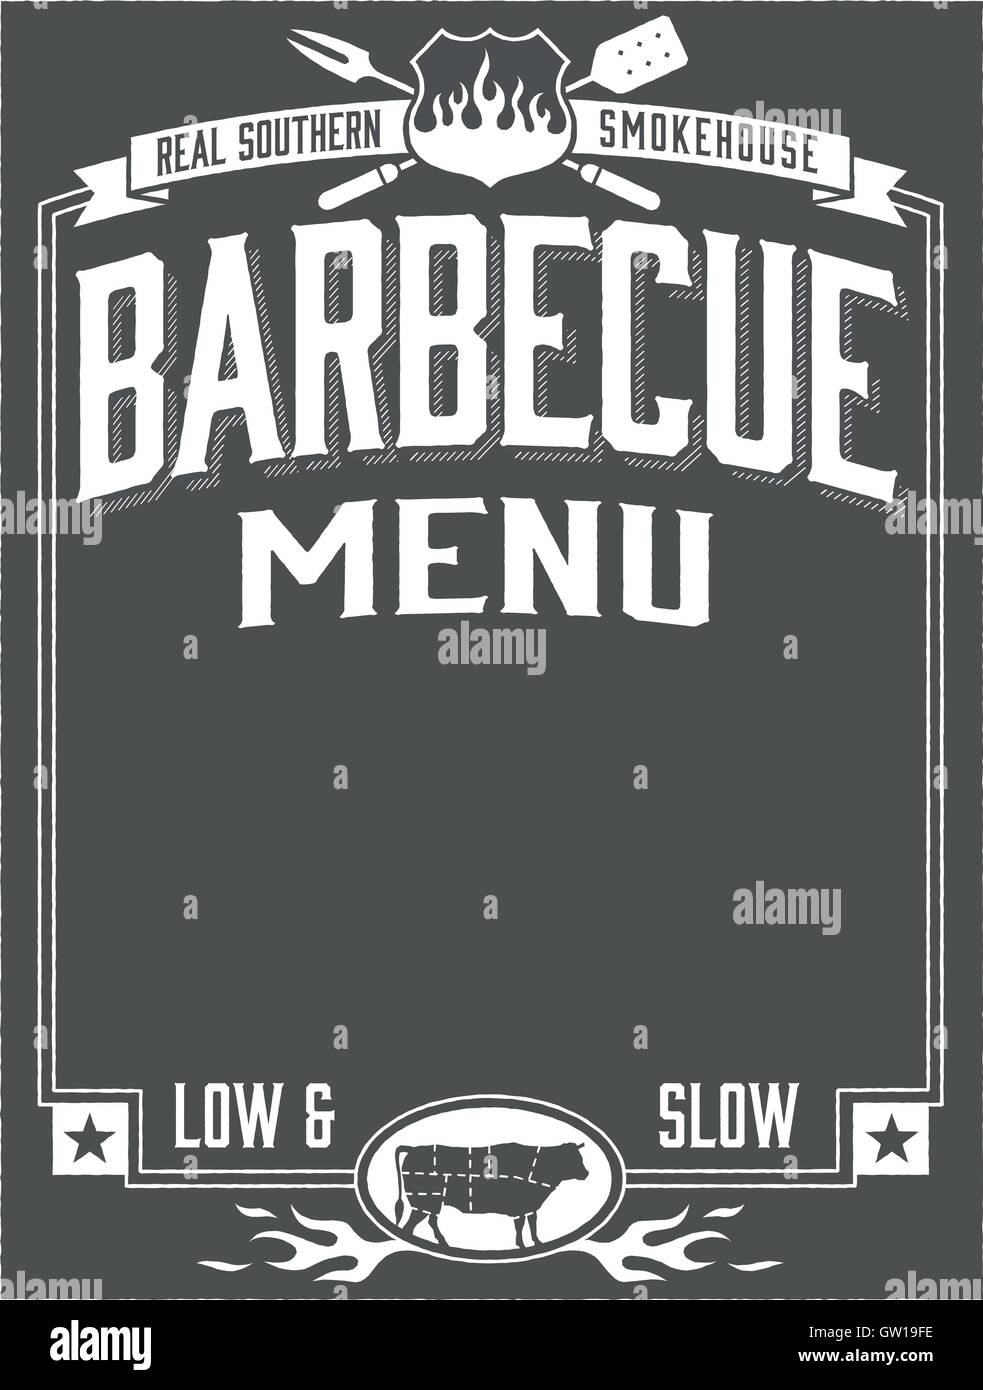 real southern barbecue menu template stock vector art illustration